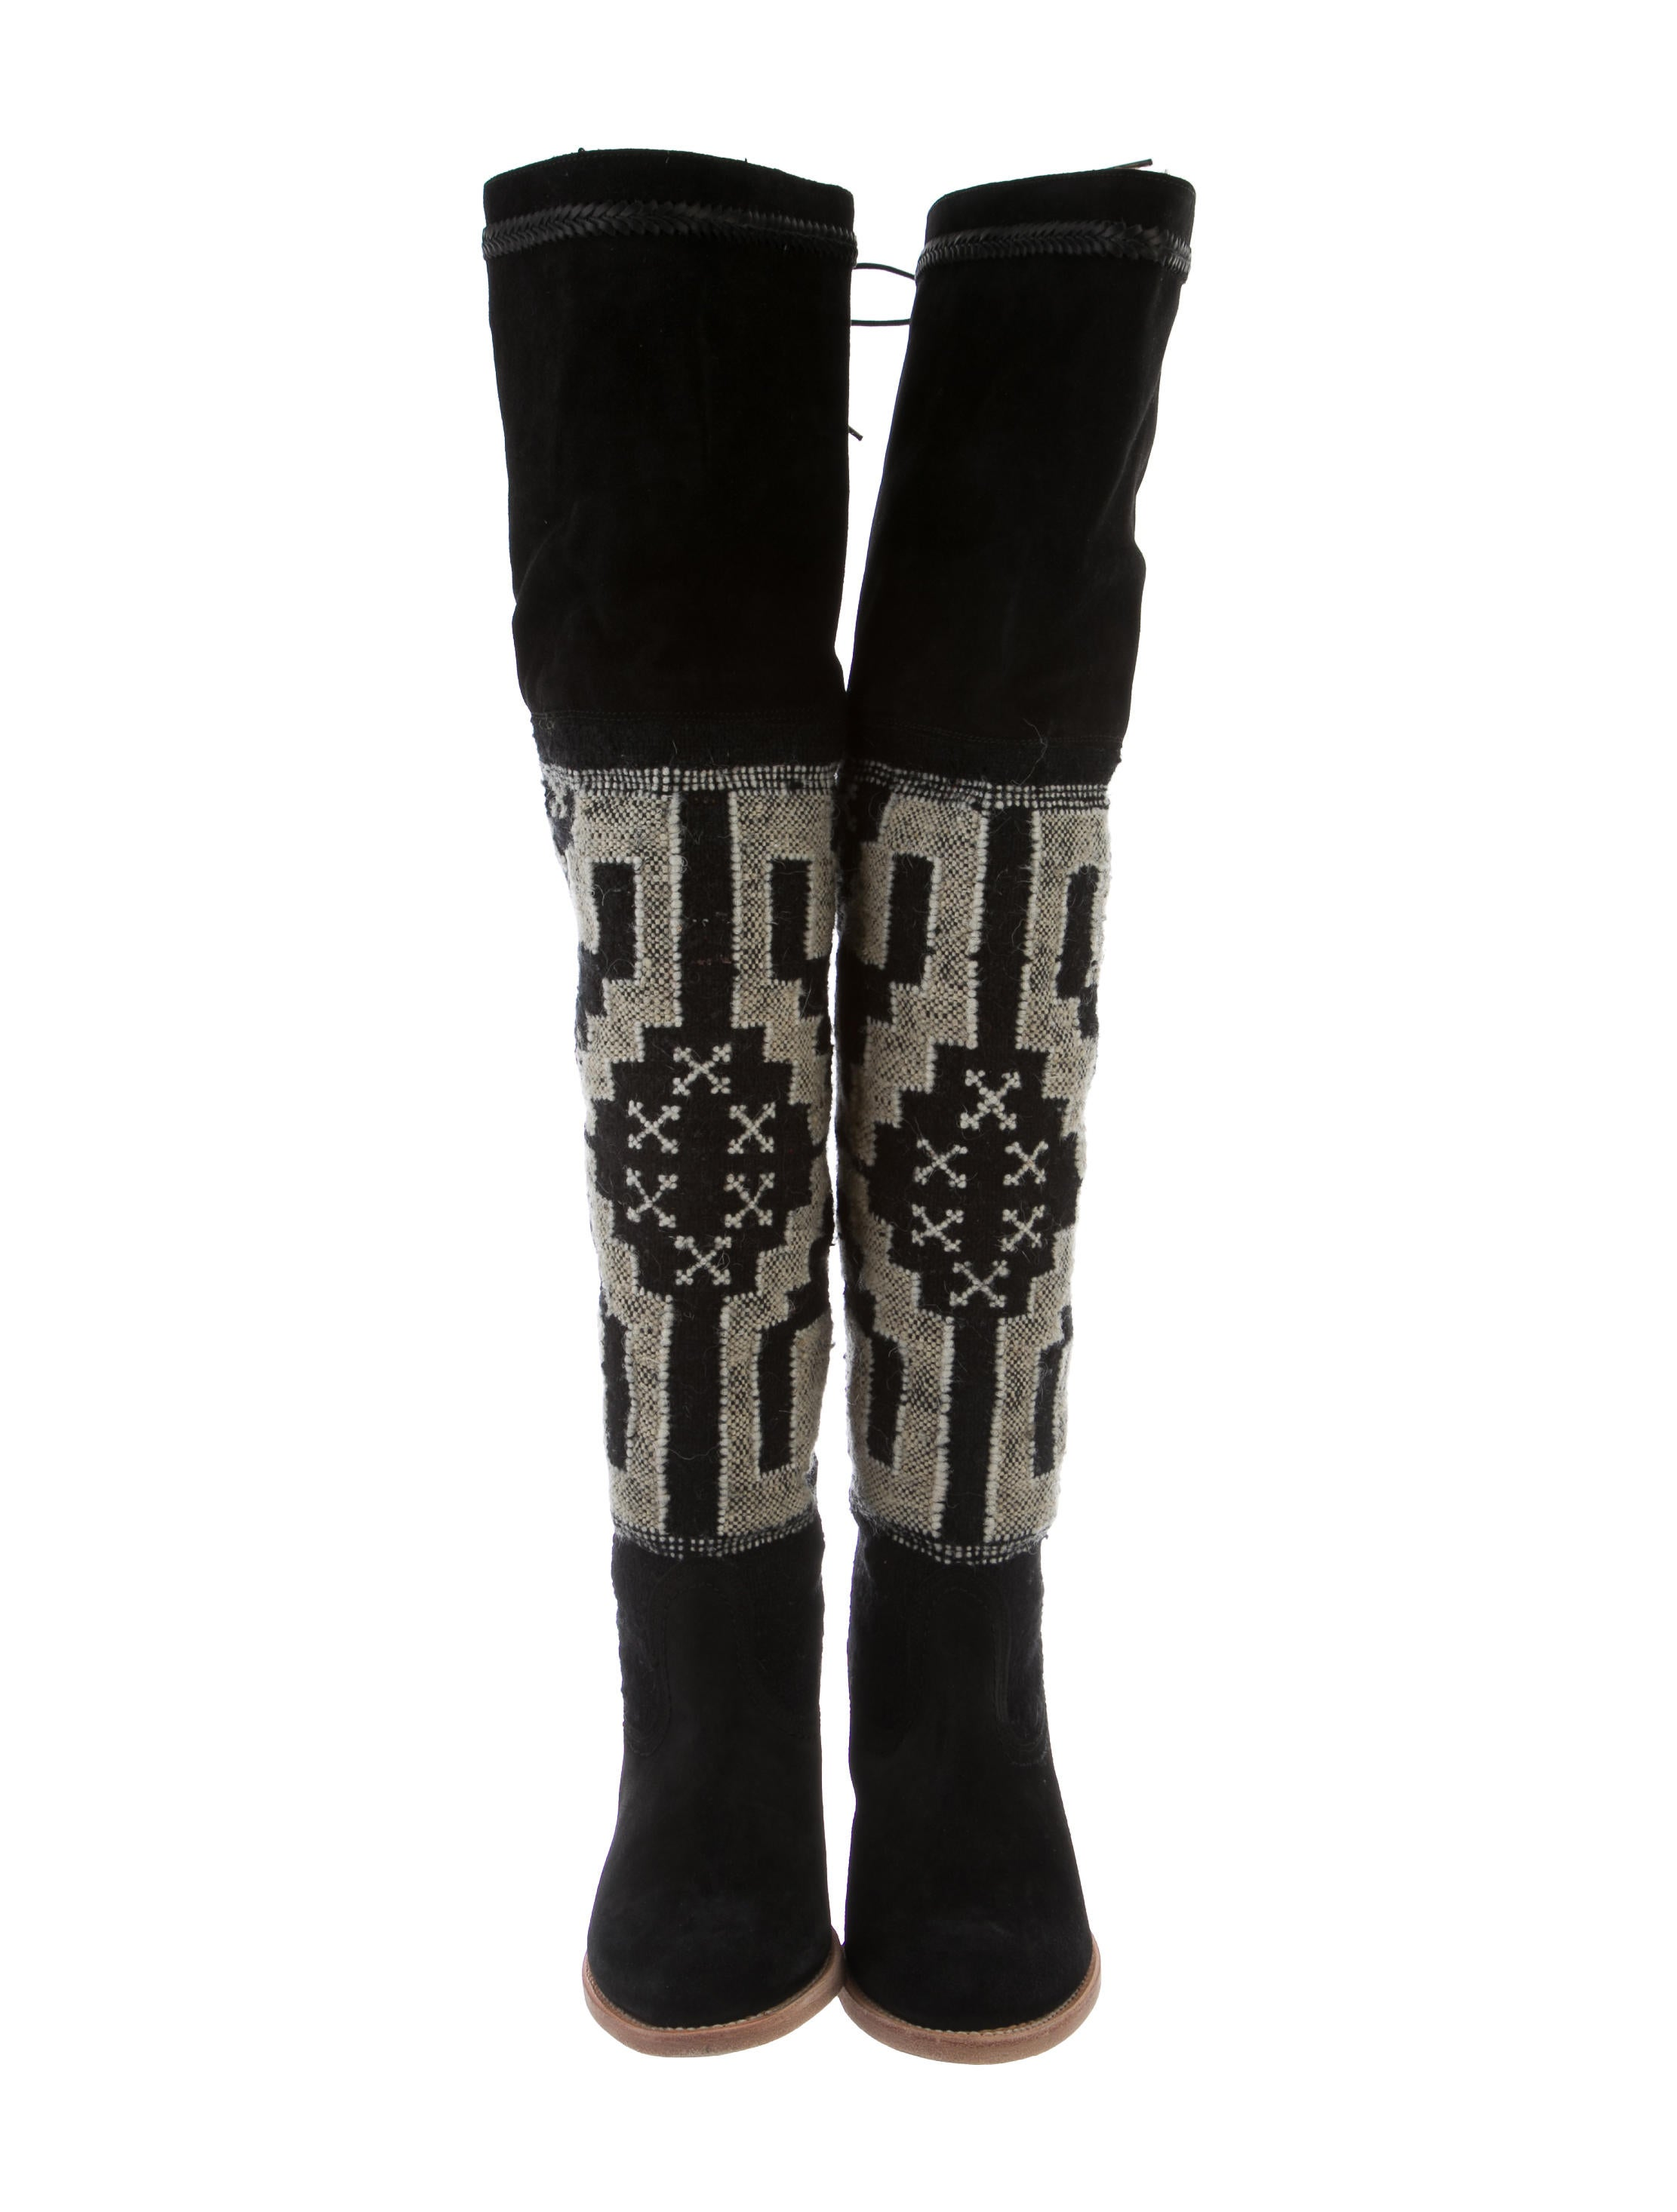 affordable online Cobra Society Zeus Knee-High Boots w/ Tags low shipping for sale xFcLPW4tRq